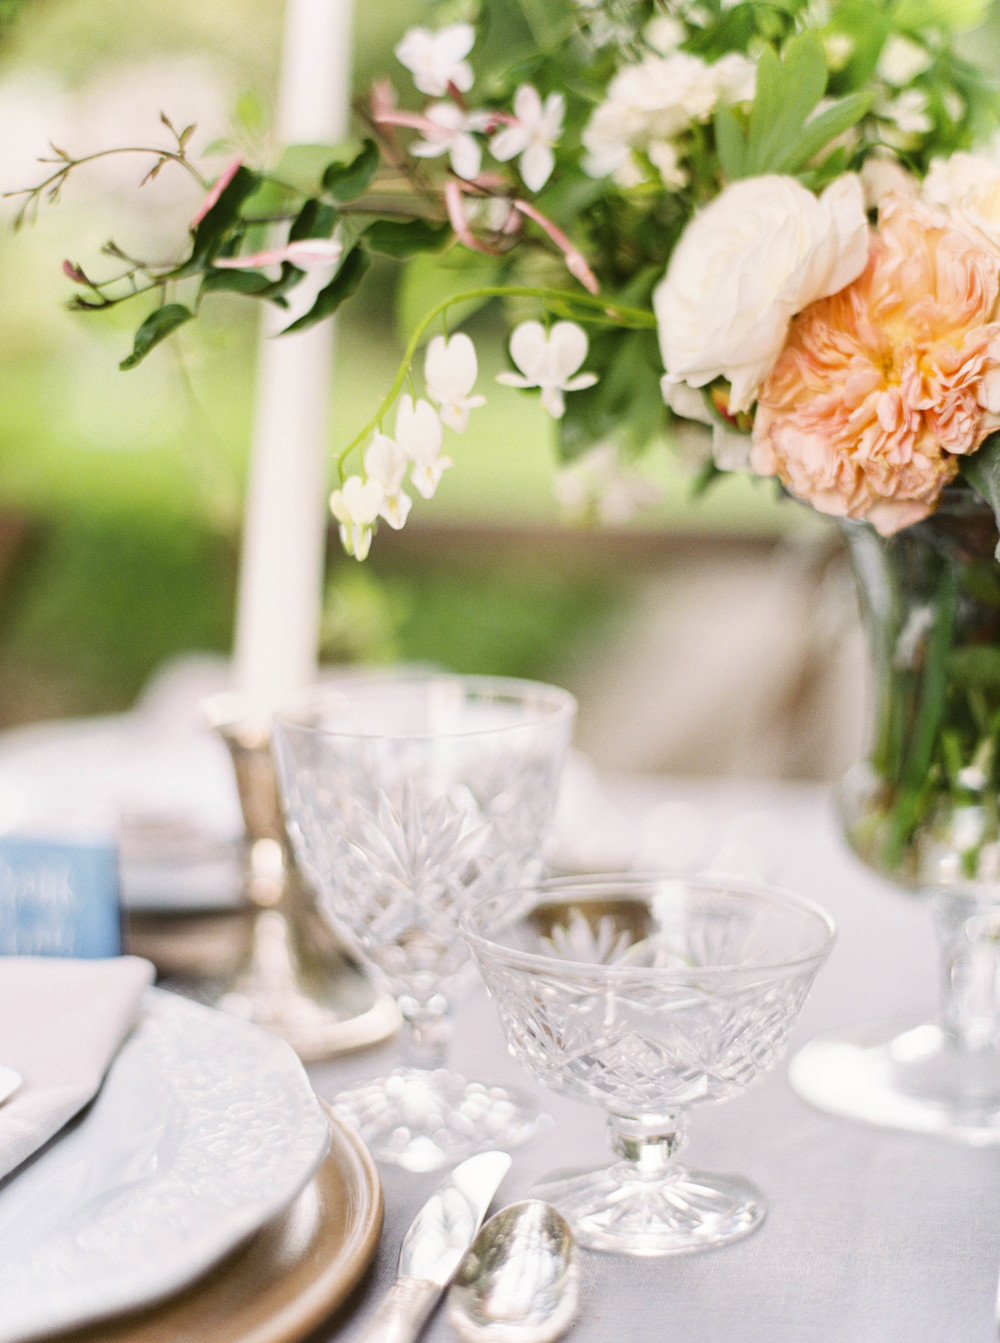 Wedding reception-vintage glassware-floral centerpiece-fine wedding photography-tablescape-outdoor wedding reception-neutral palette-